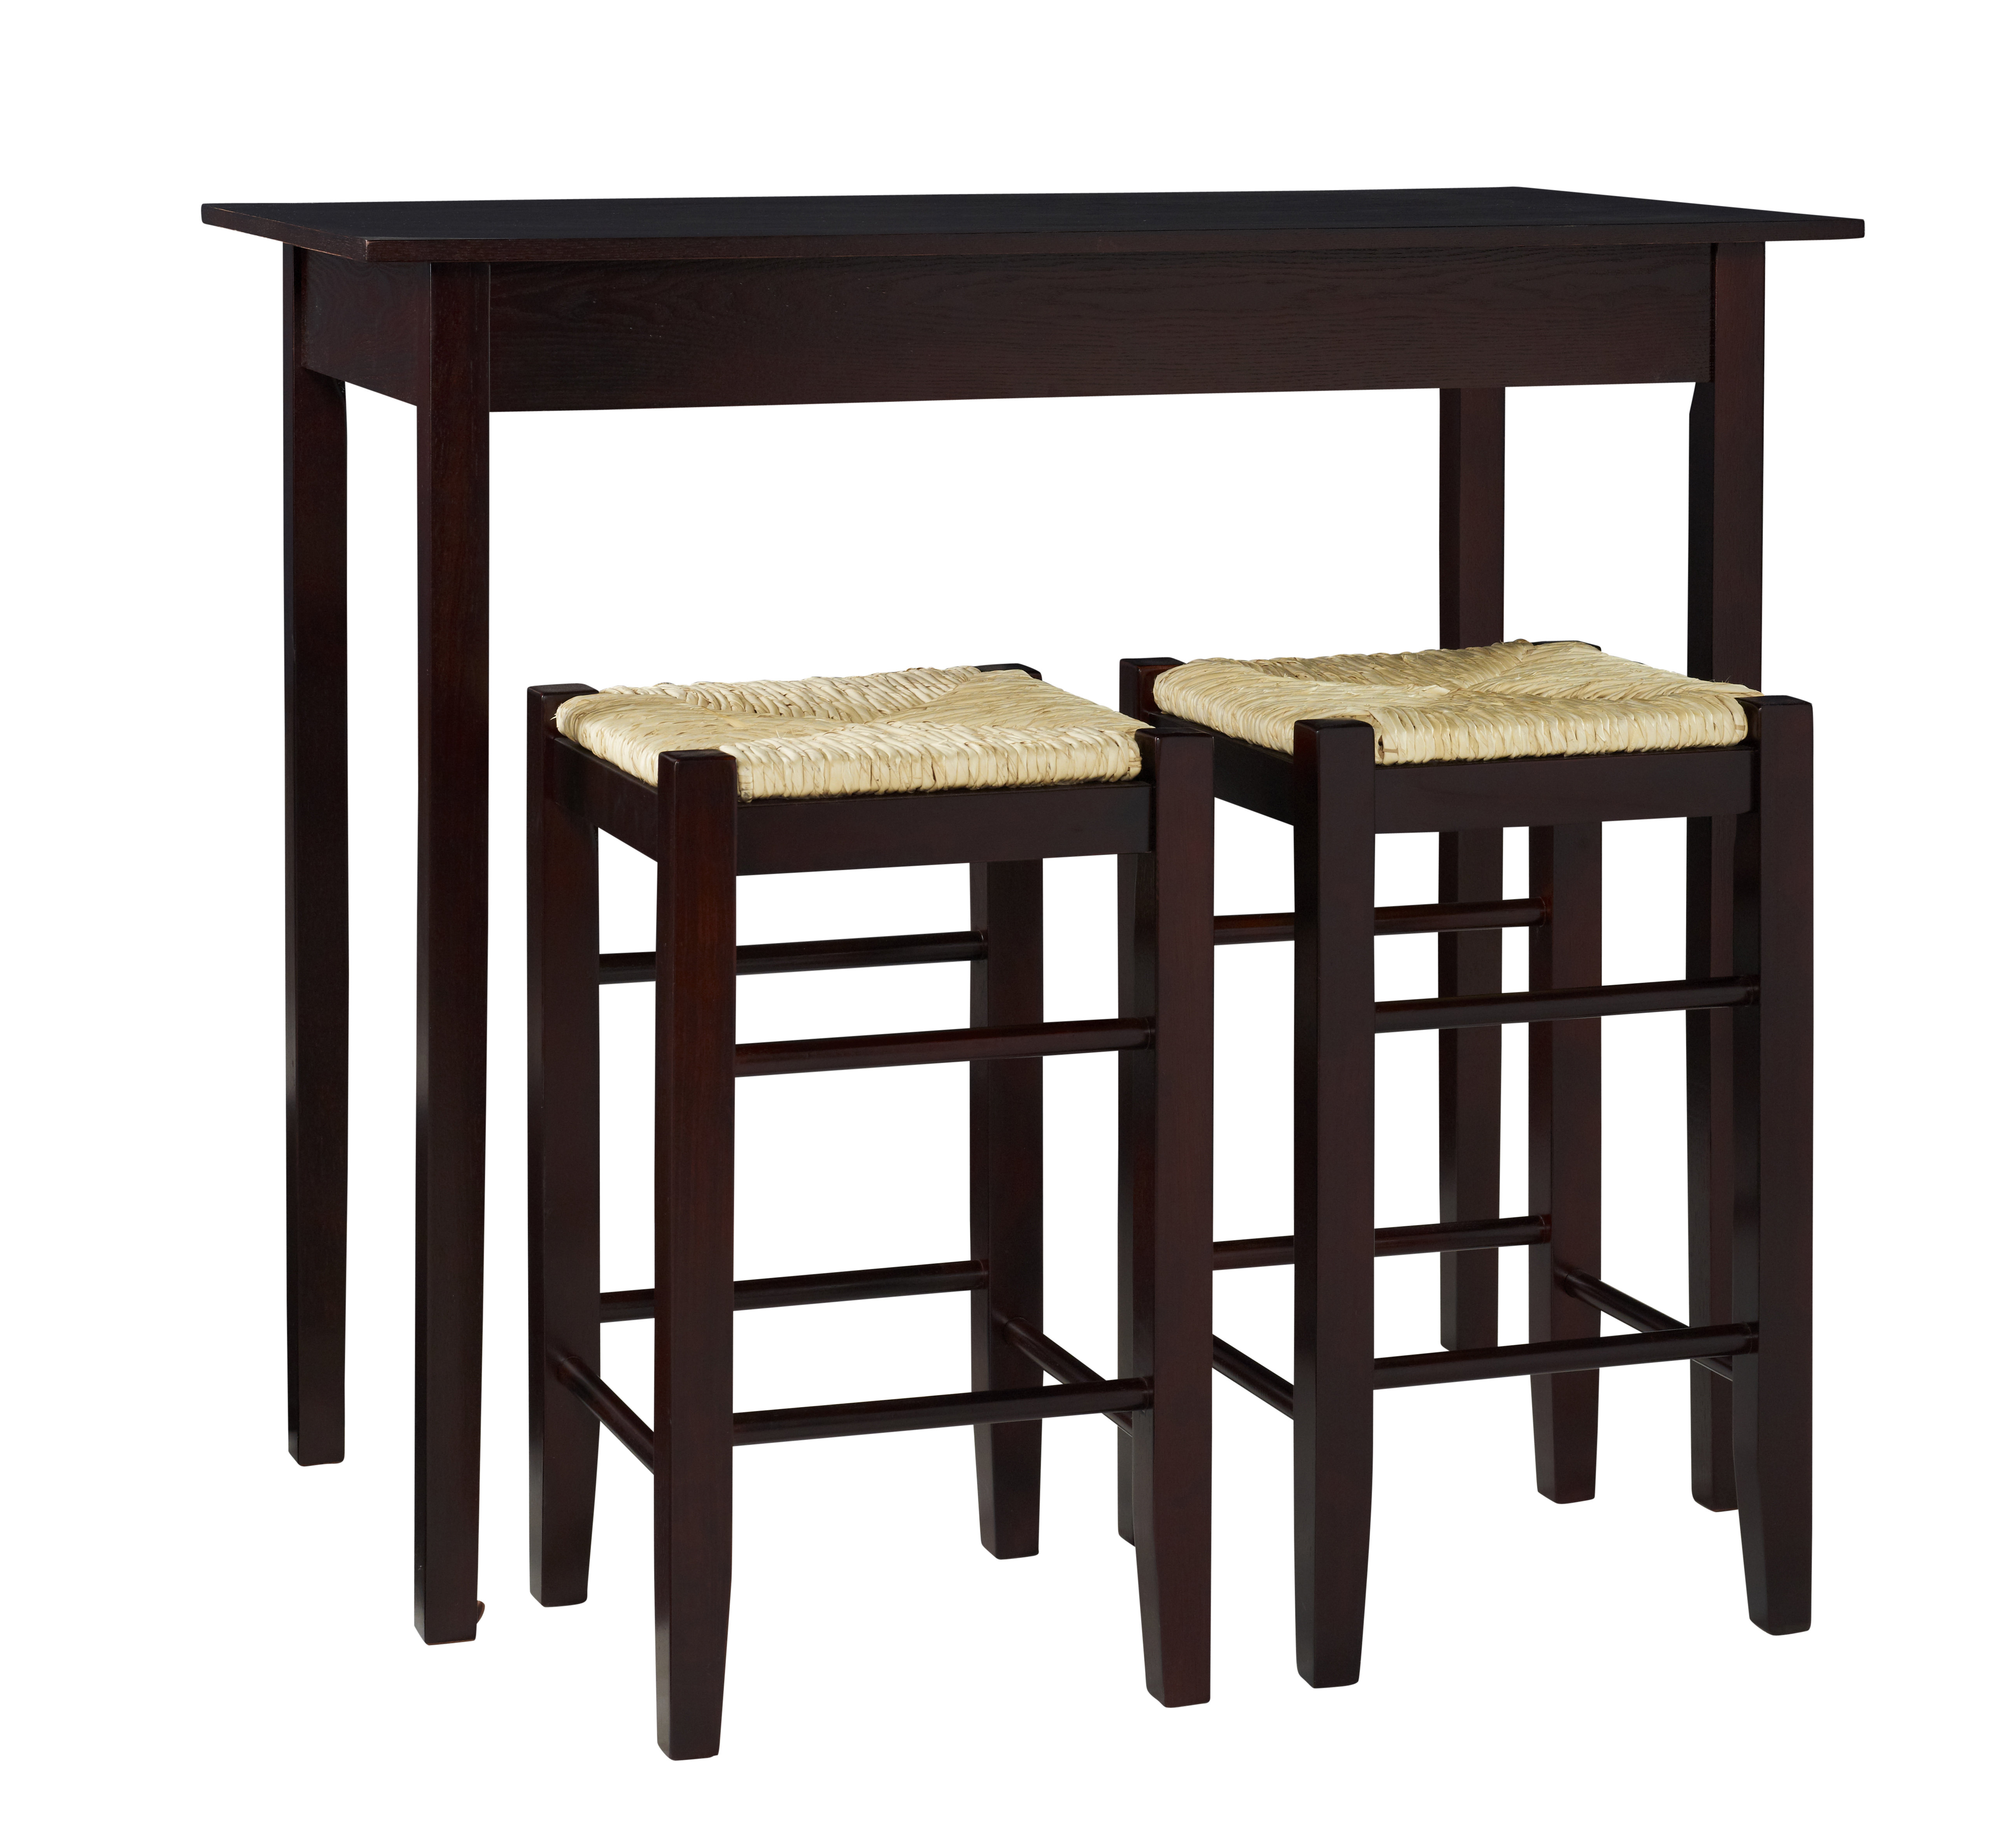 August Grove Tenney 3 Piece Counter Height Dining Set Throughout Tenney 3 Piece Counter Height Dining Sets (Image 9 of 25)